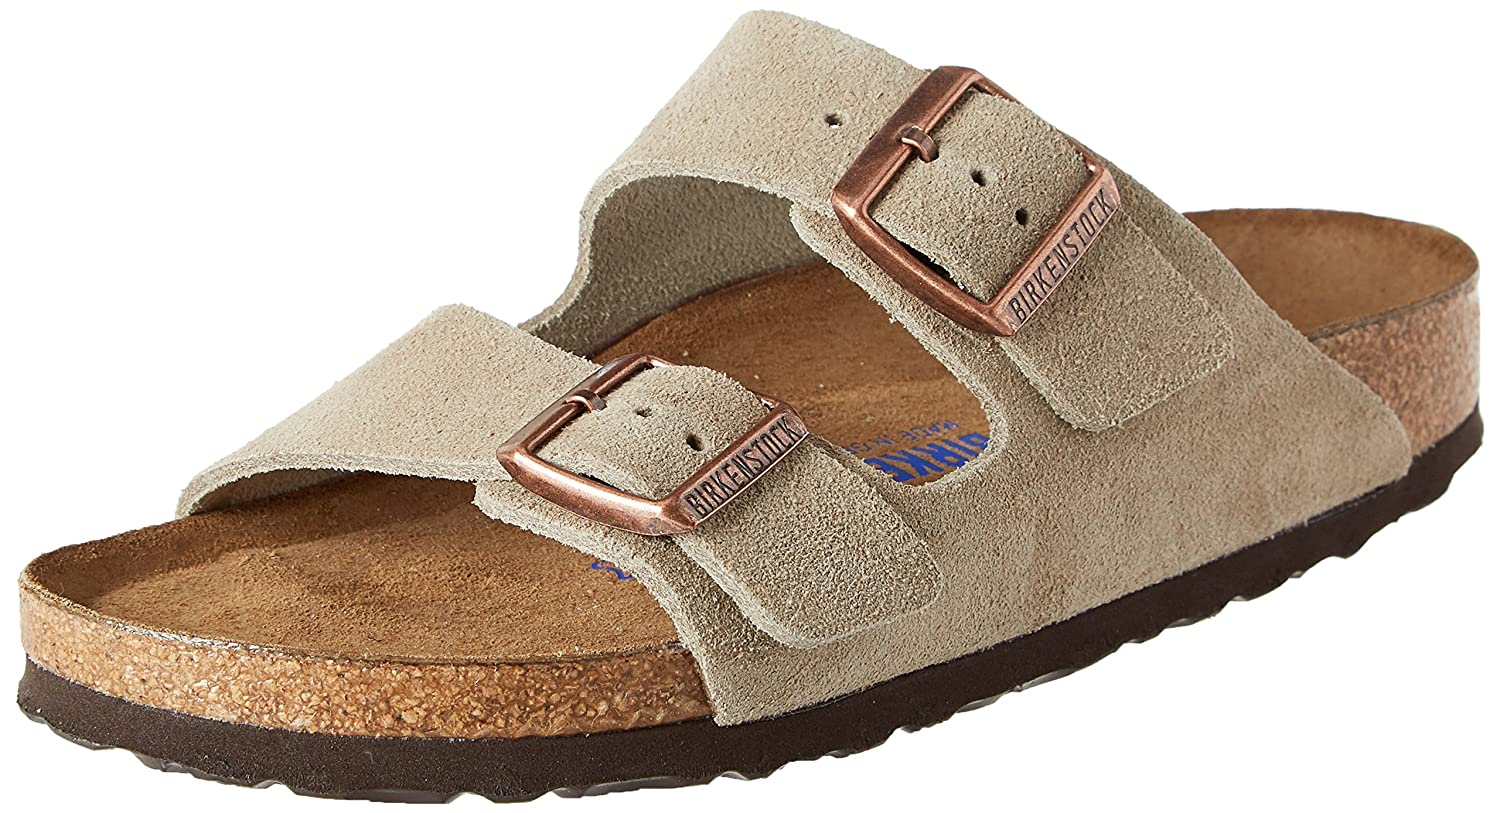 d27dab0fcdb66a Birkenstock Arizona Soft Footbed Suede Leather Narrow Womens Sandals Taupe   Amazon.com.au  Fashion